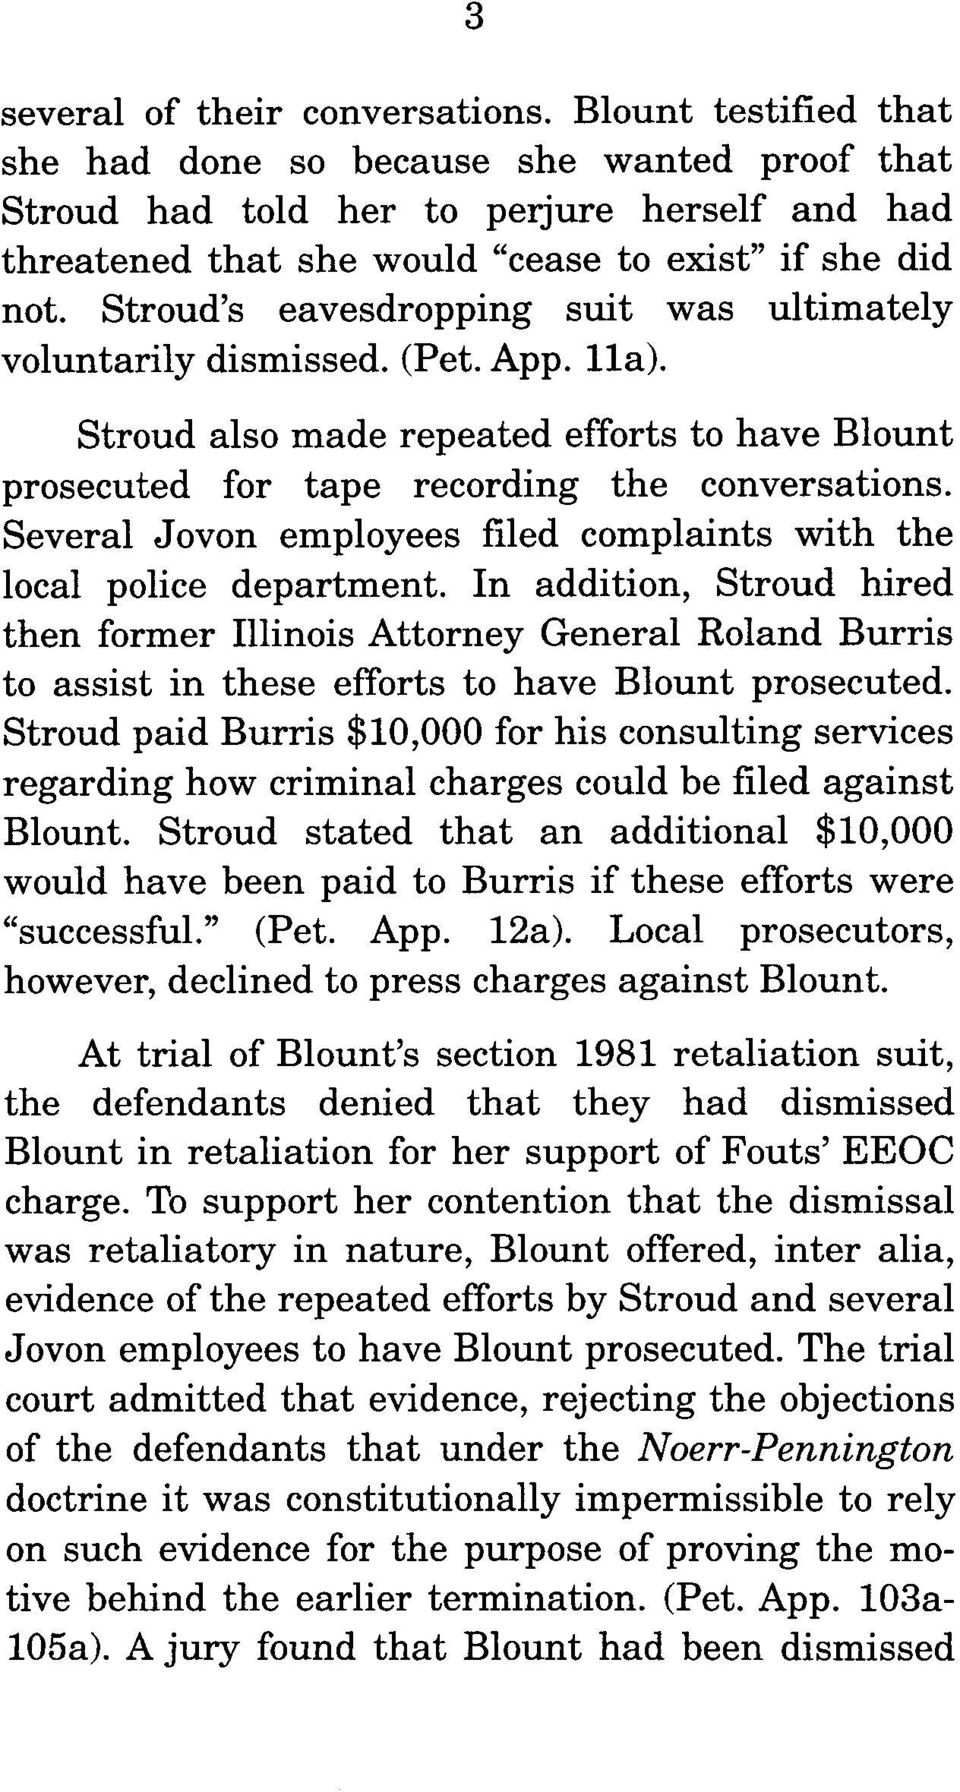 Stroud s eavesdropping suit was ultimately voluntarily dismissed. (Pet. App. lla). Stroud also made repeated efforts to have Blount prosecuted for tape recording the conversations.